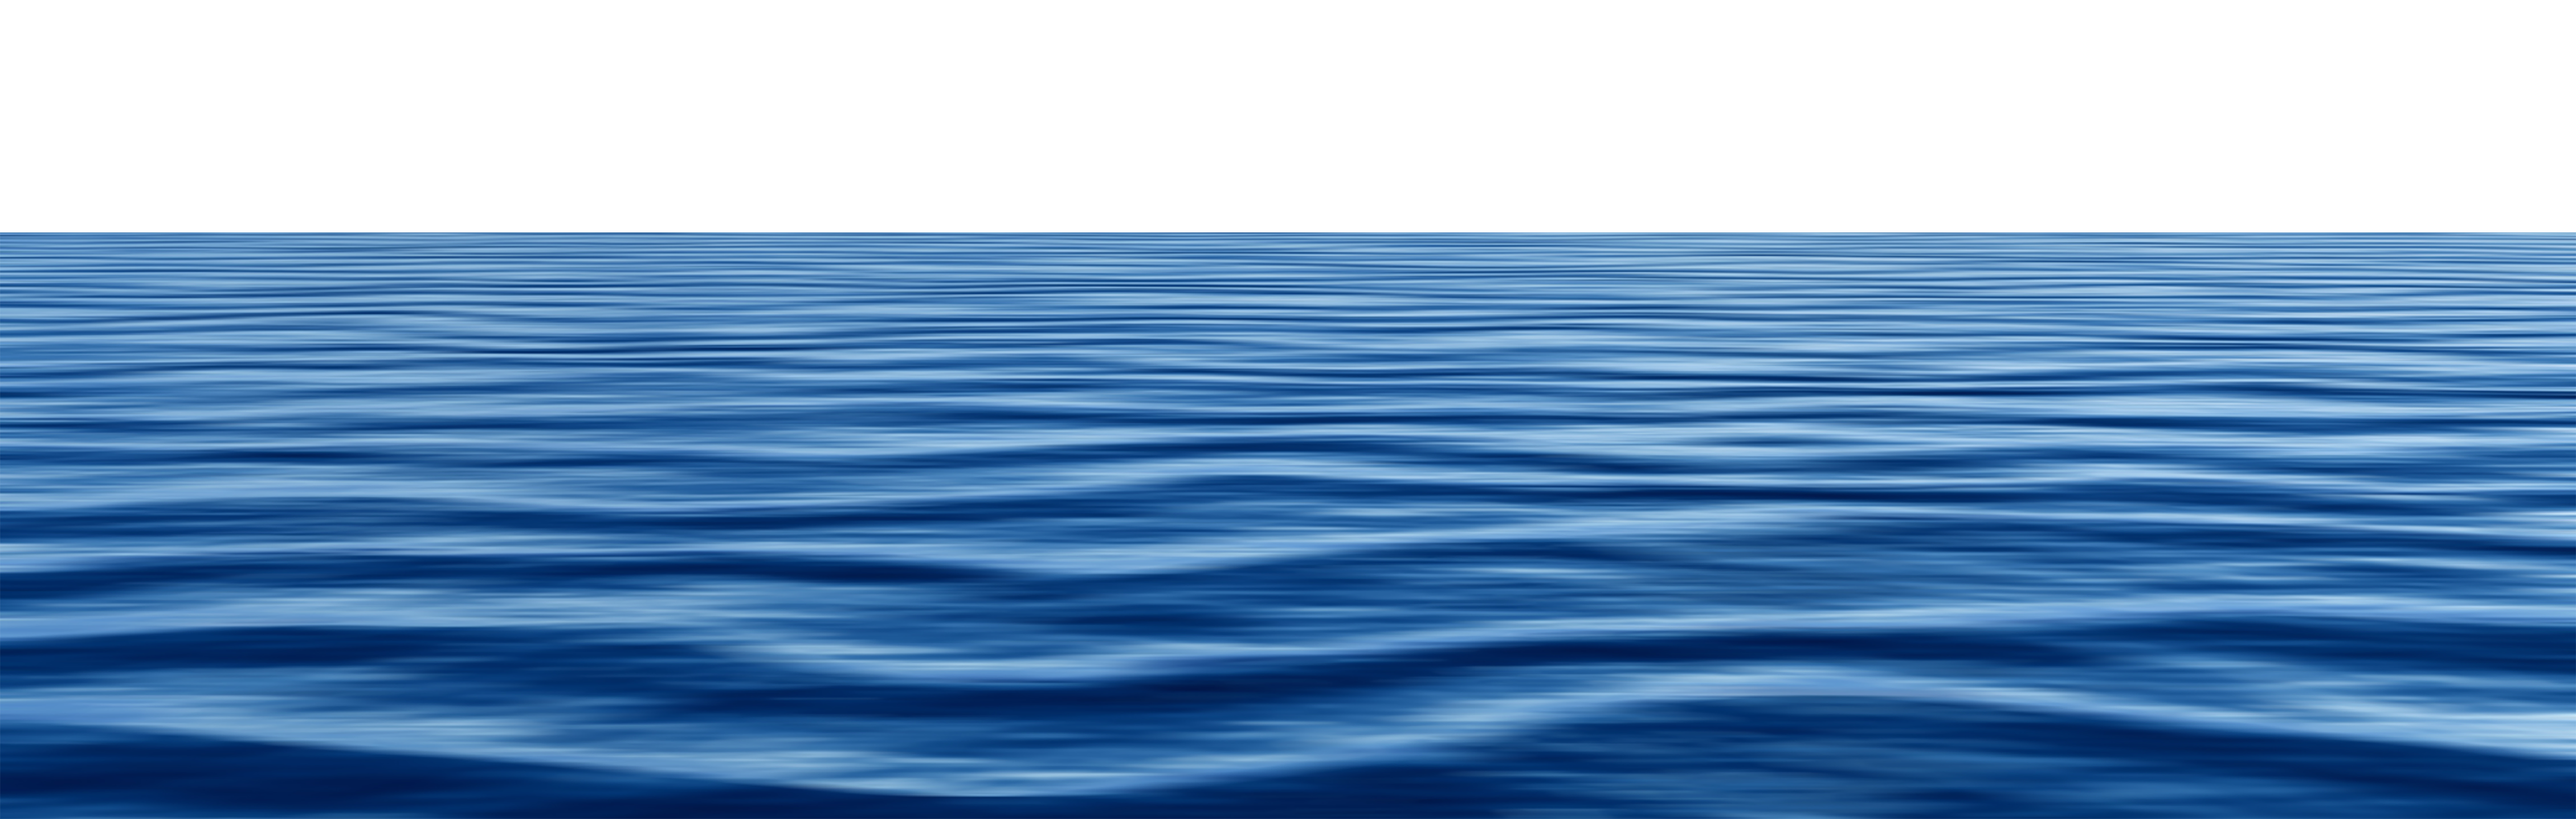 Blue sea ground png. Waves clipart river wave